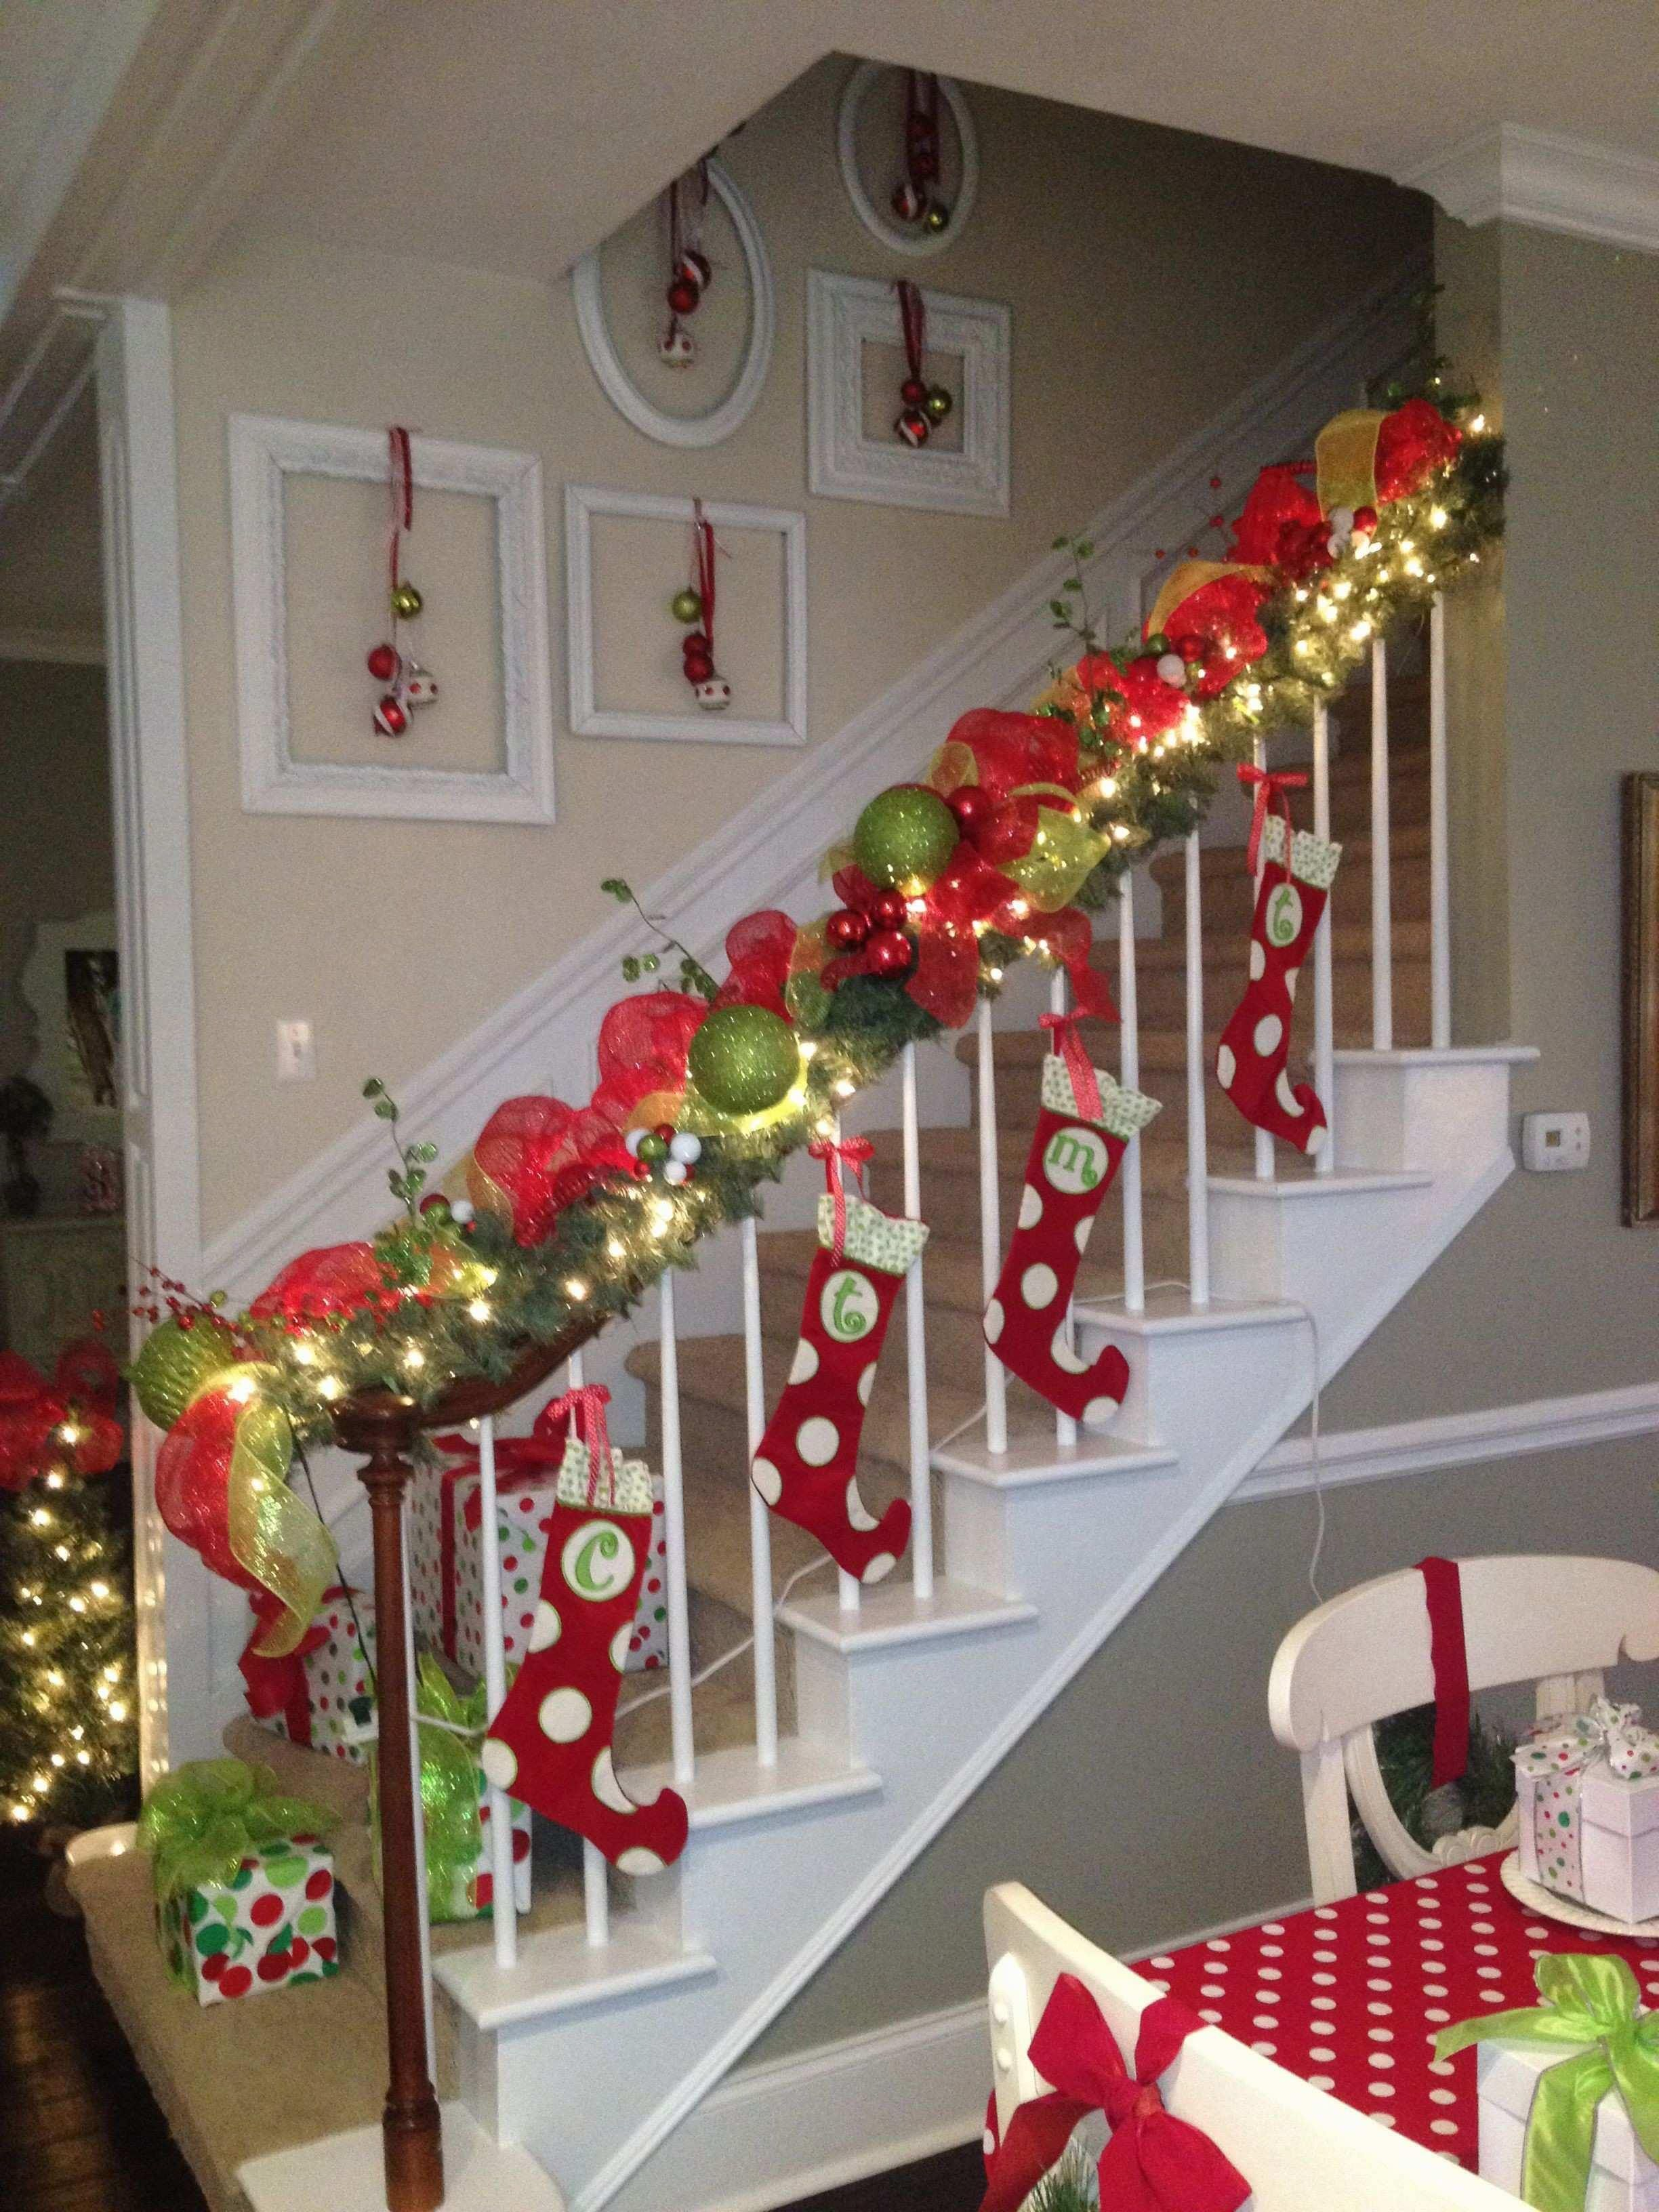 Decorating banisters for christmas with ribbon - Christmas decorations for stair rail ...